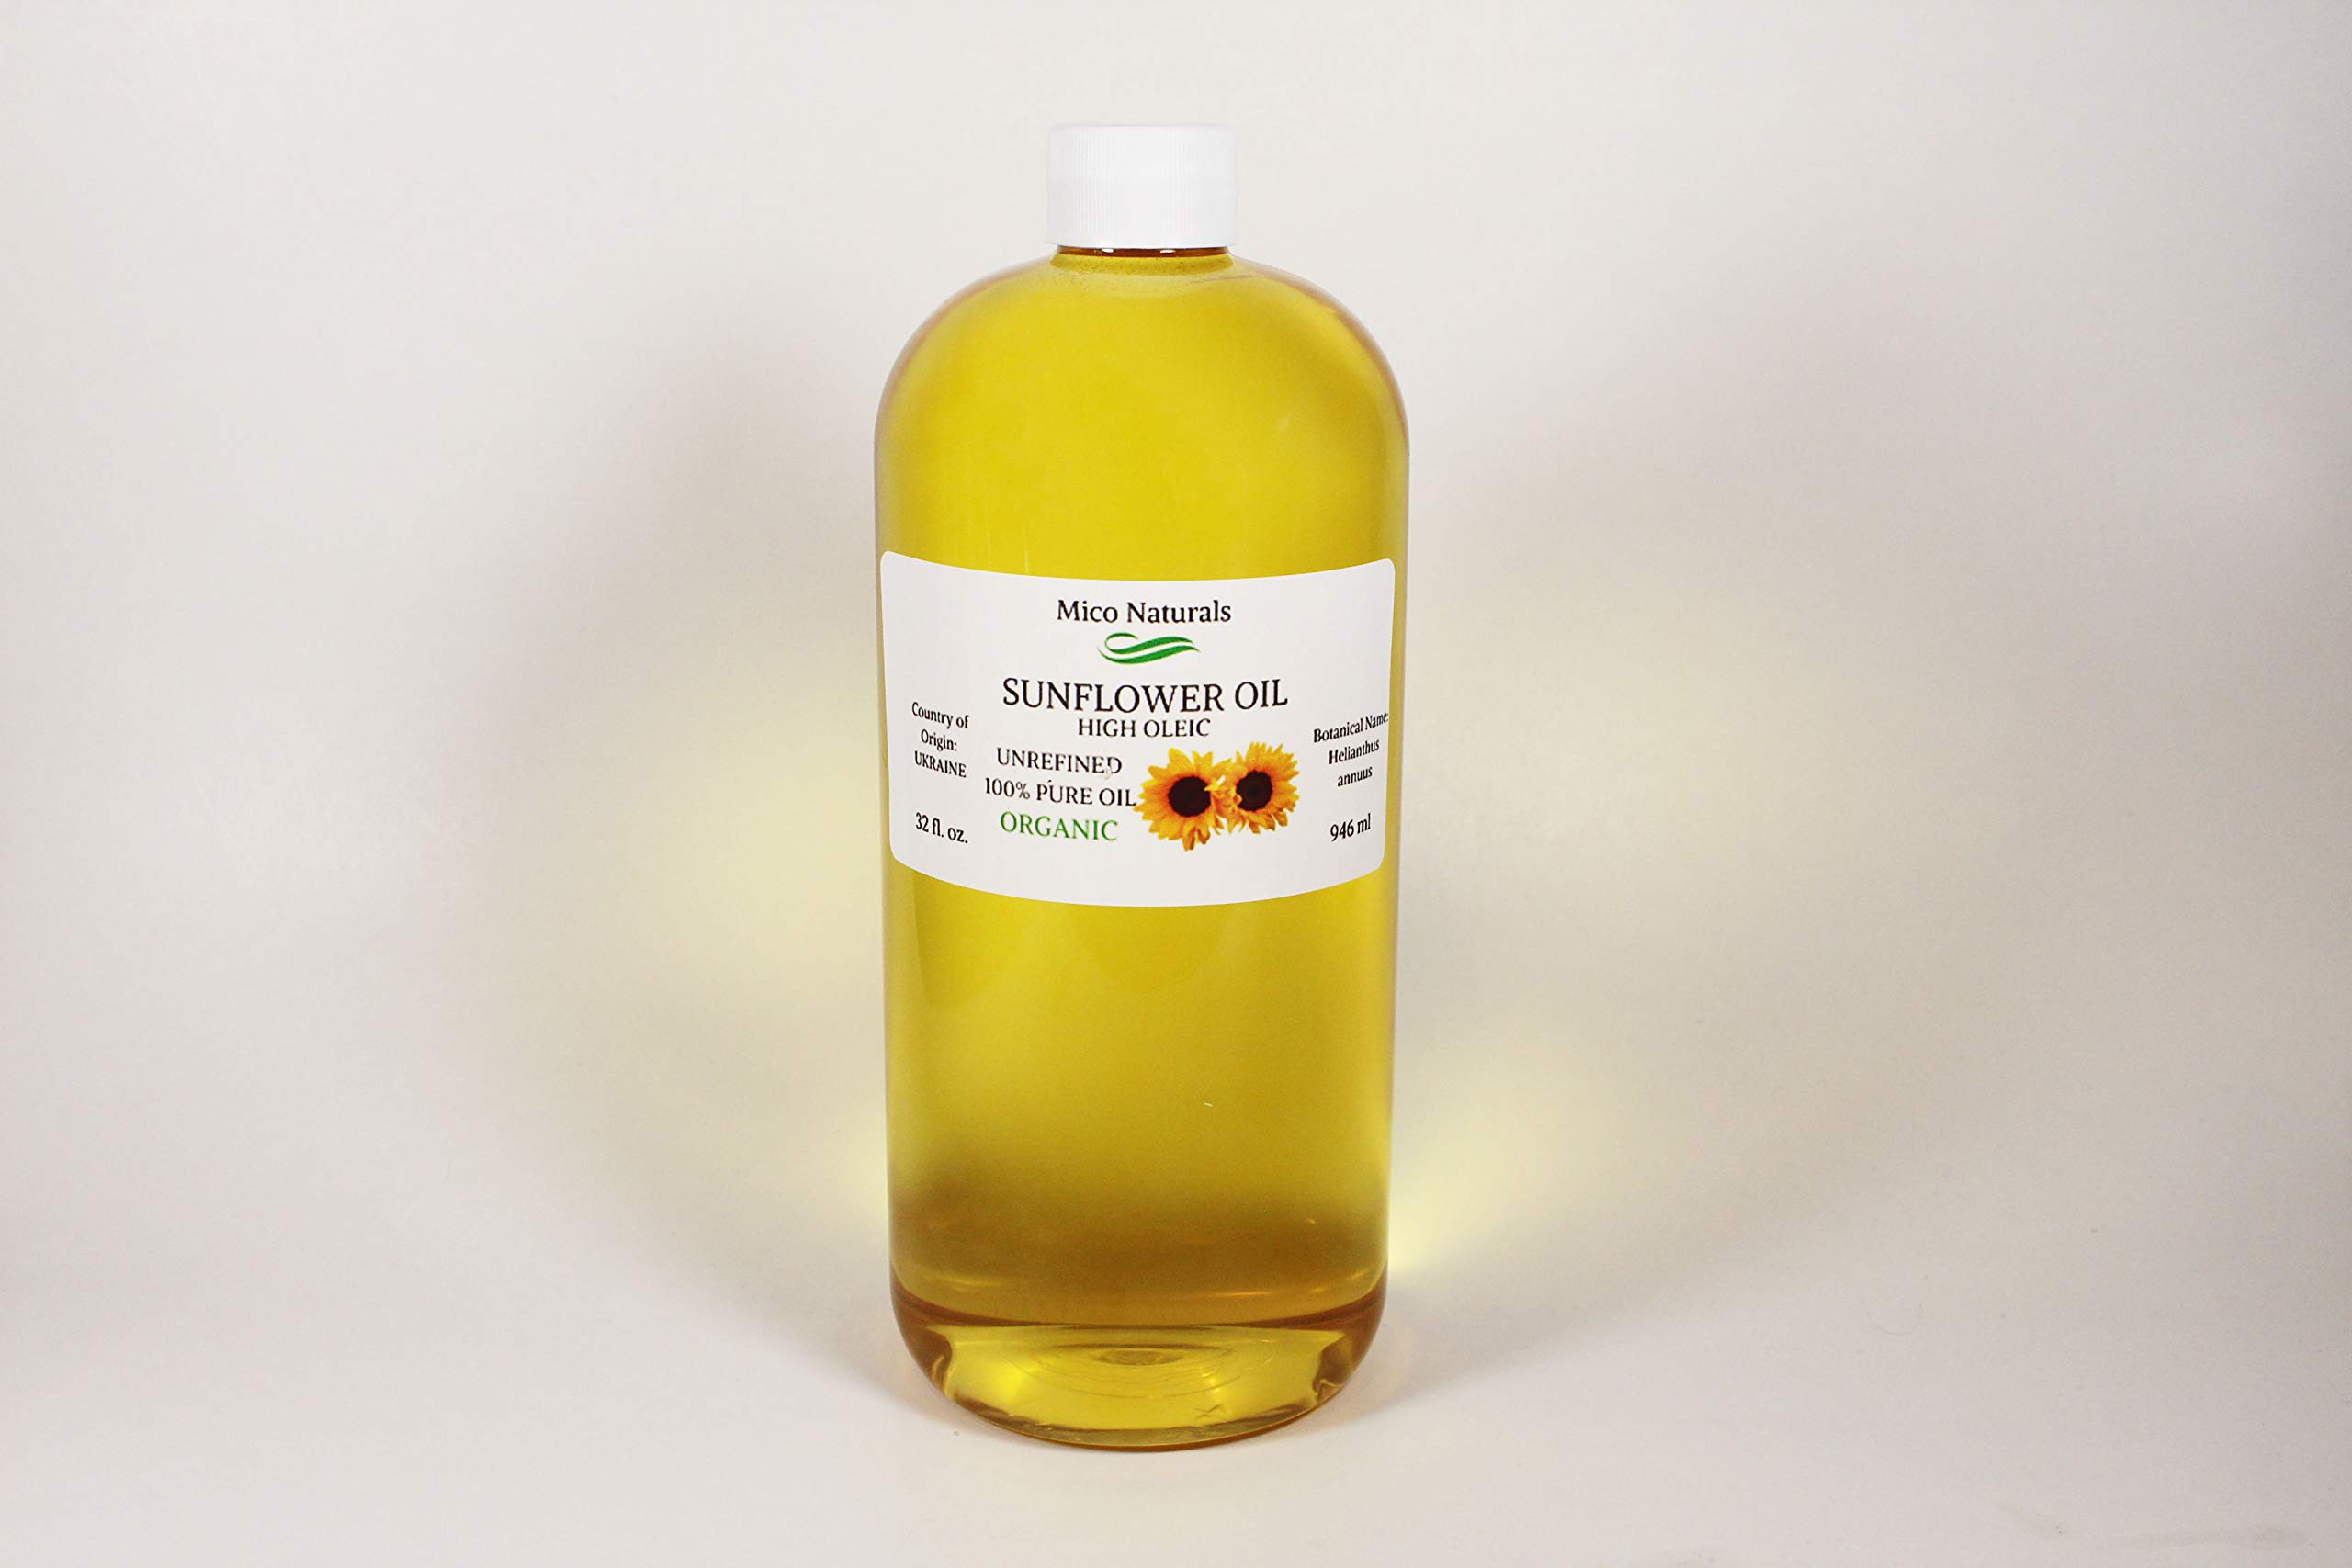 Sunflower Unrefined Organic High Oleic 32 fl. oz. by Mico Naturals by Mico Naturals